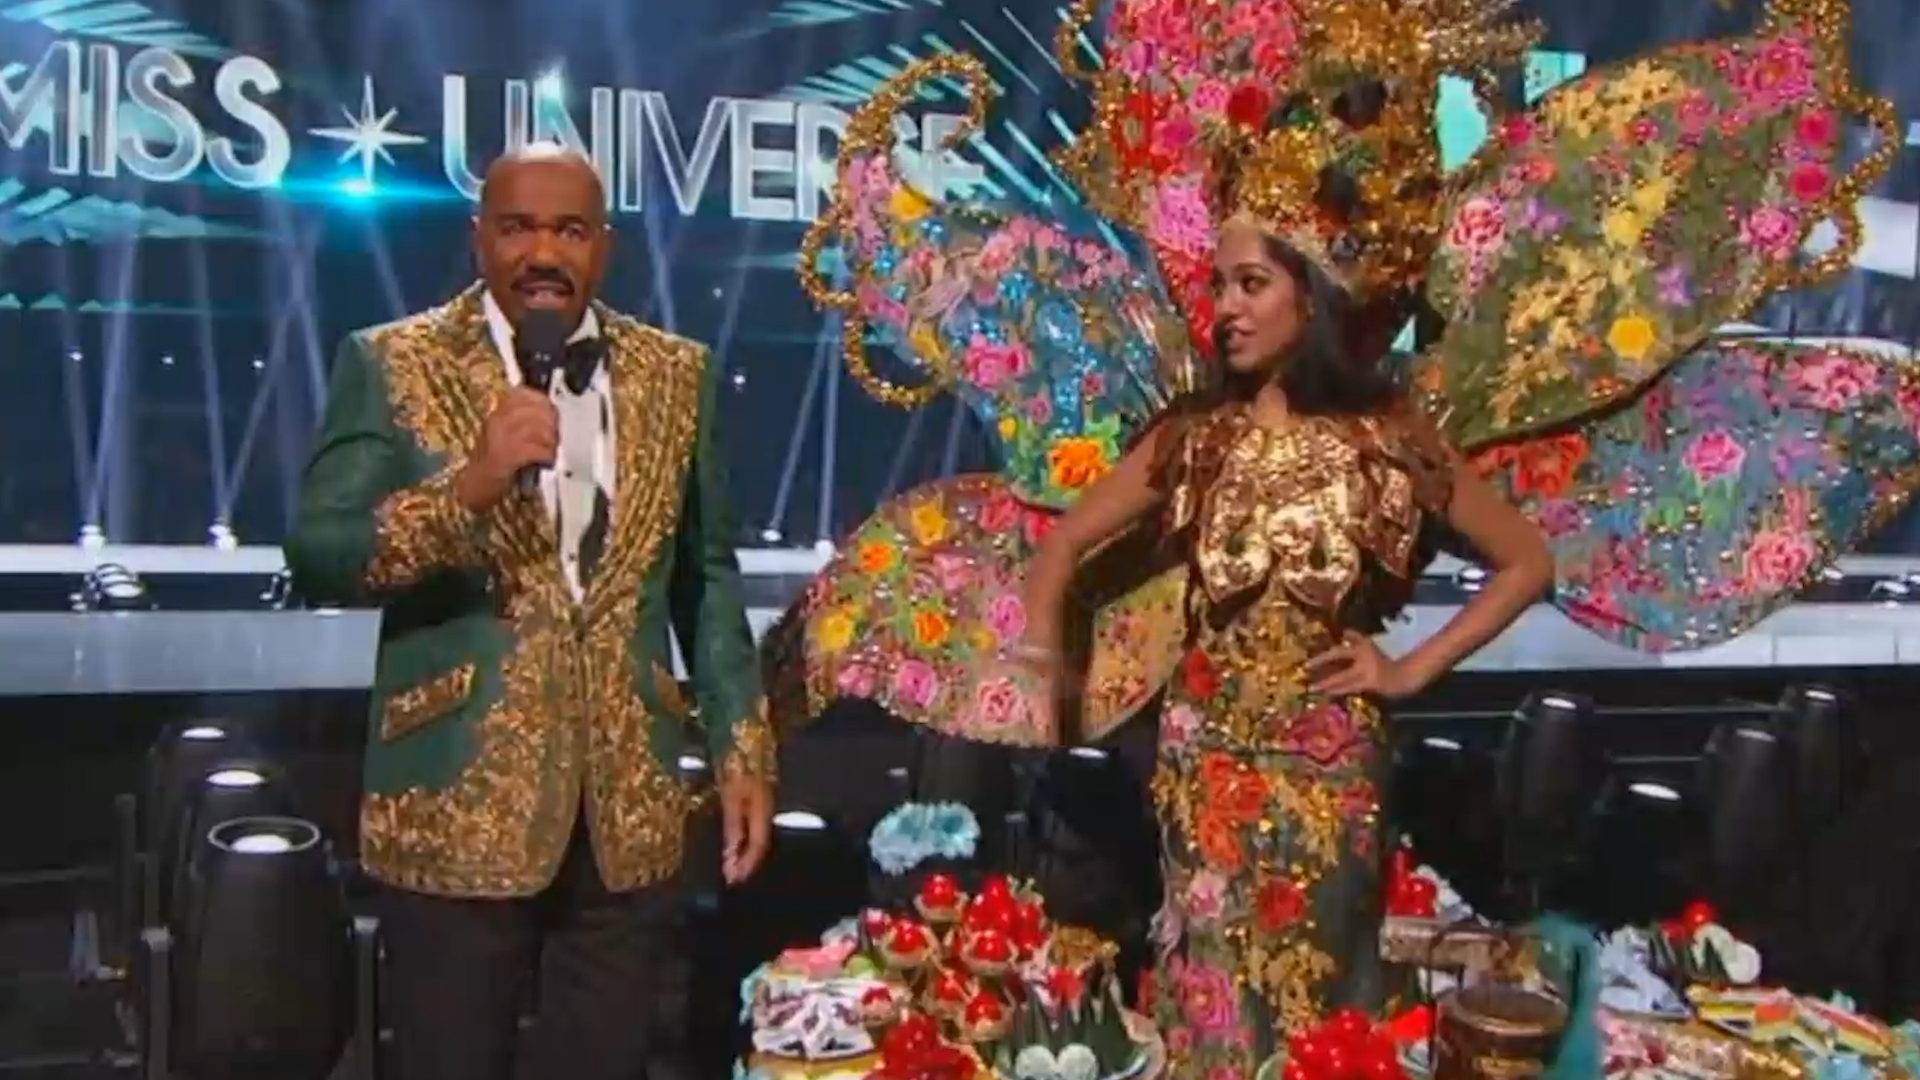 Steve Harvey announces the wrong winner during Miss Universe 2019 costume contest